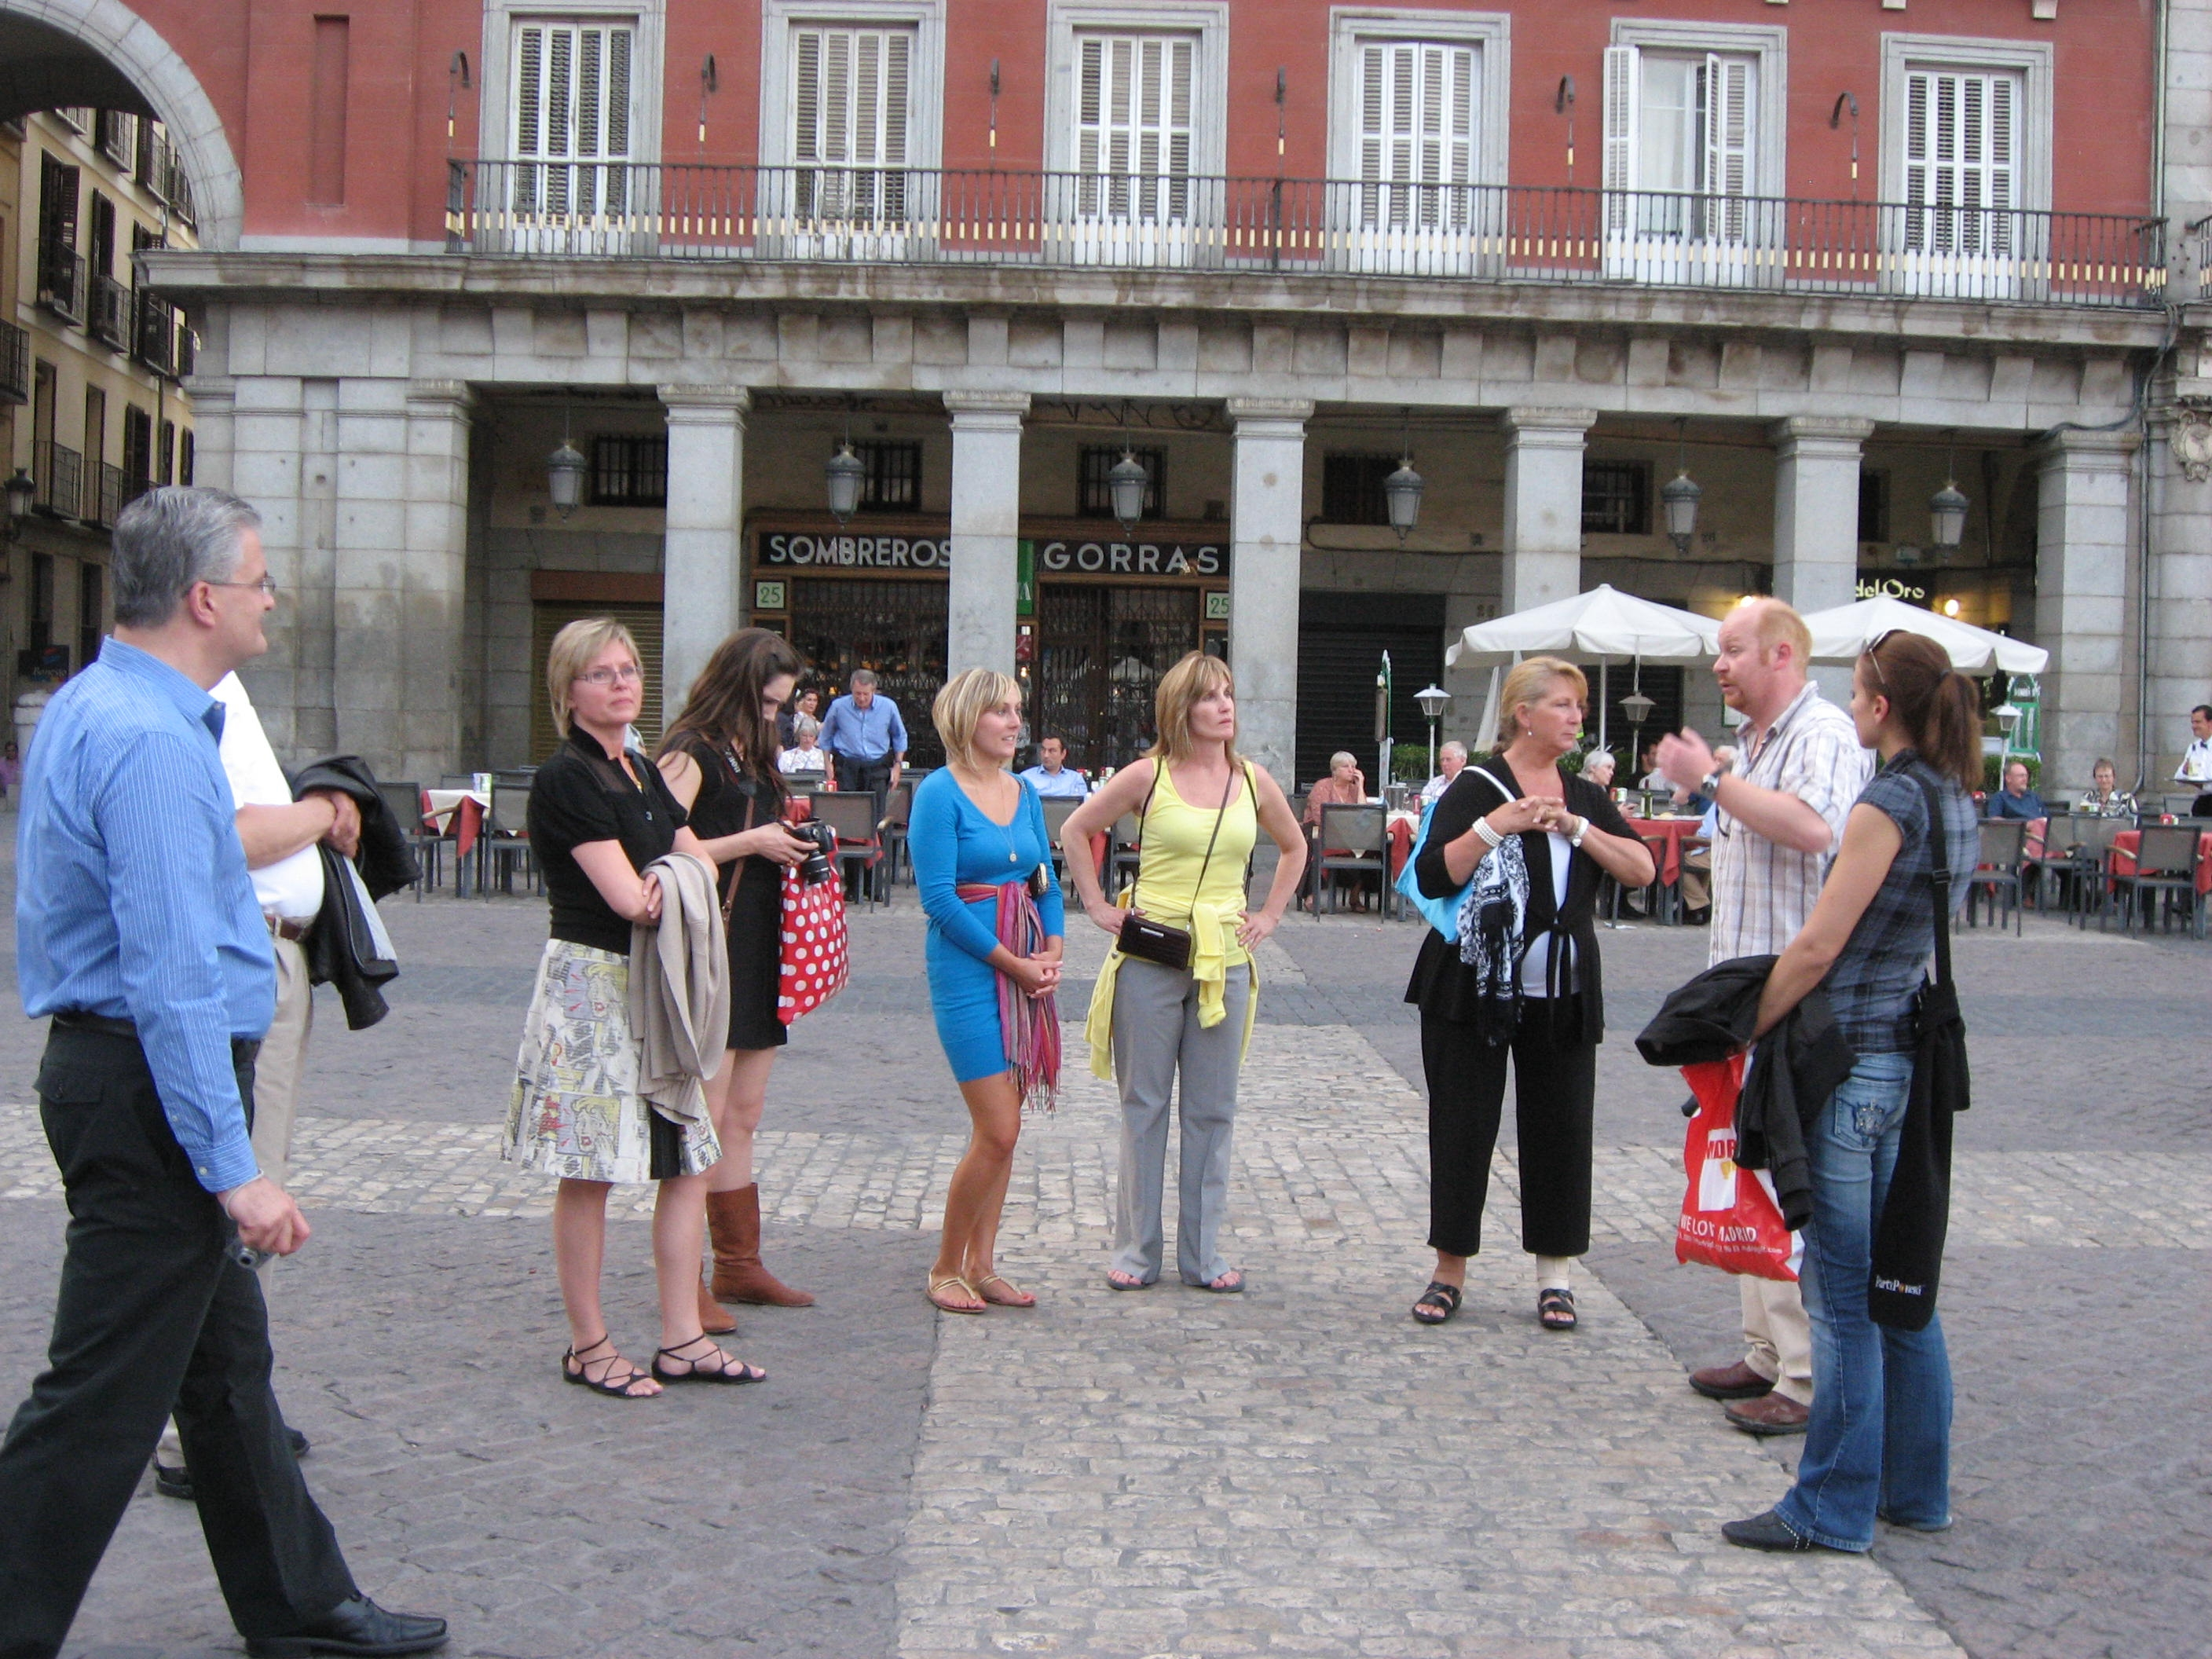 Plaza mayor guiding.JPG